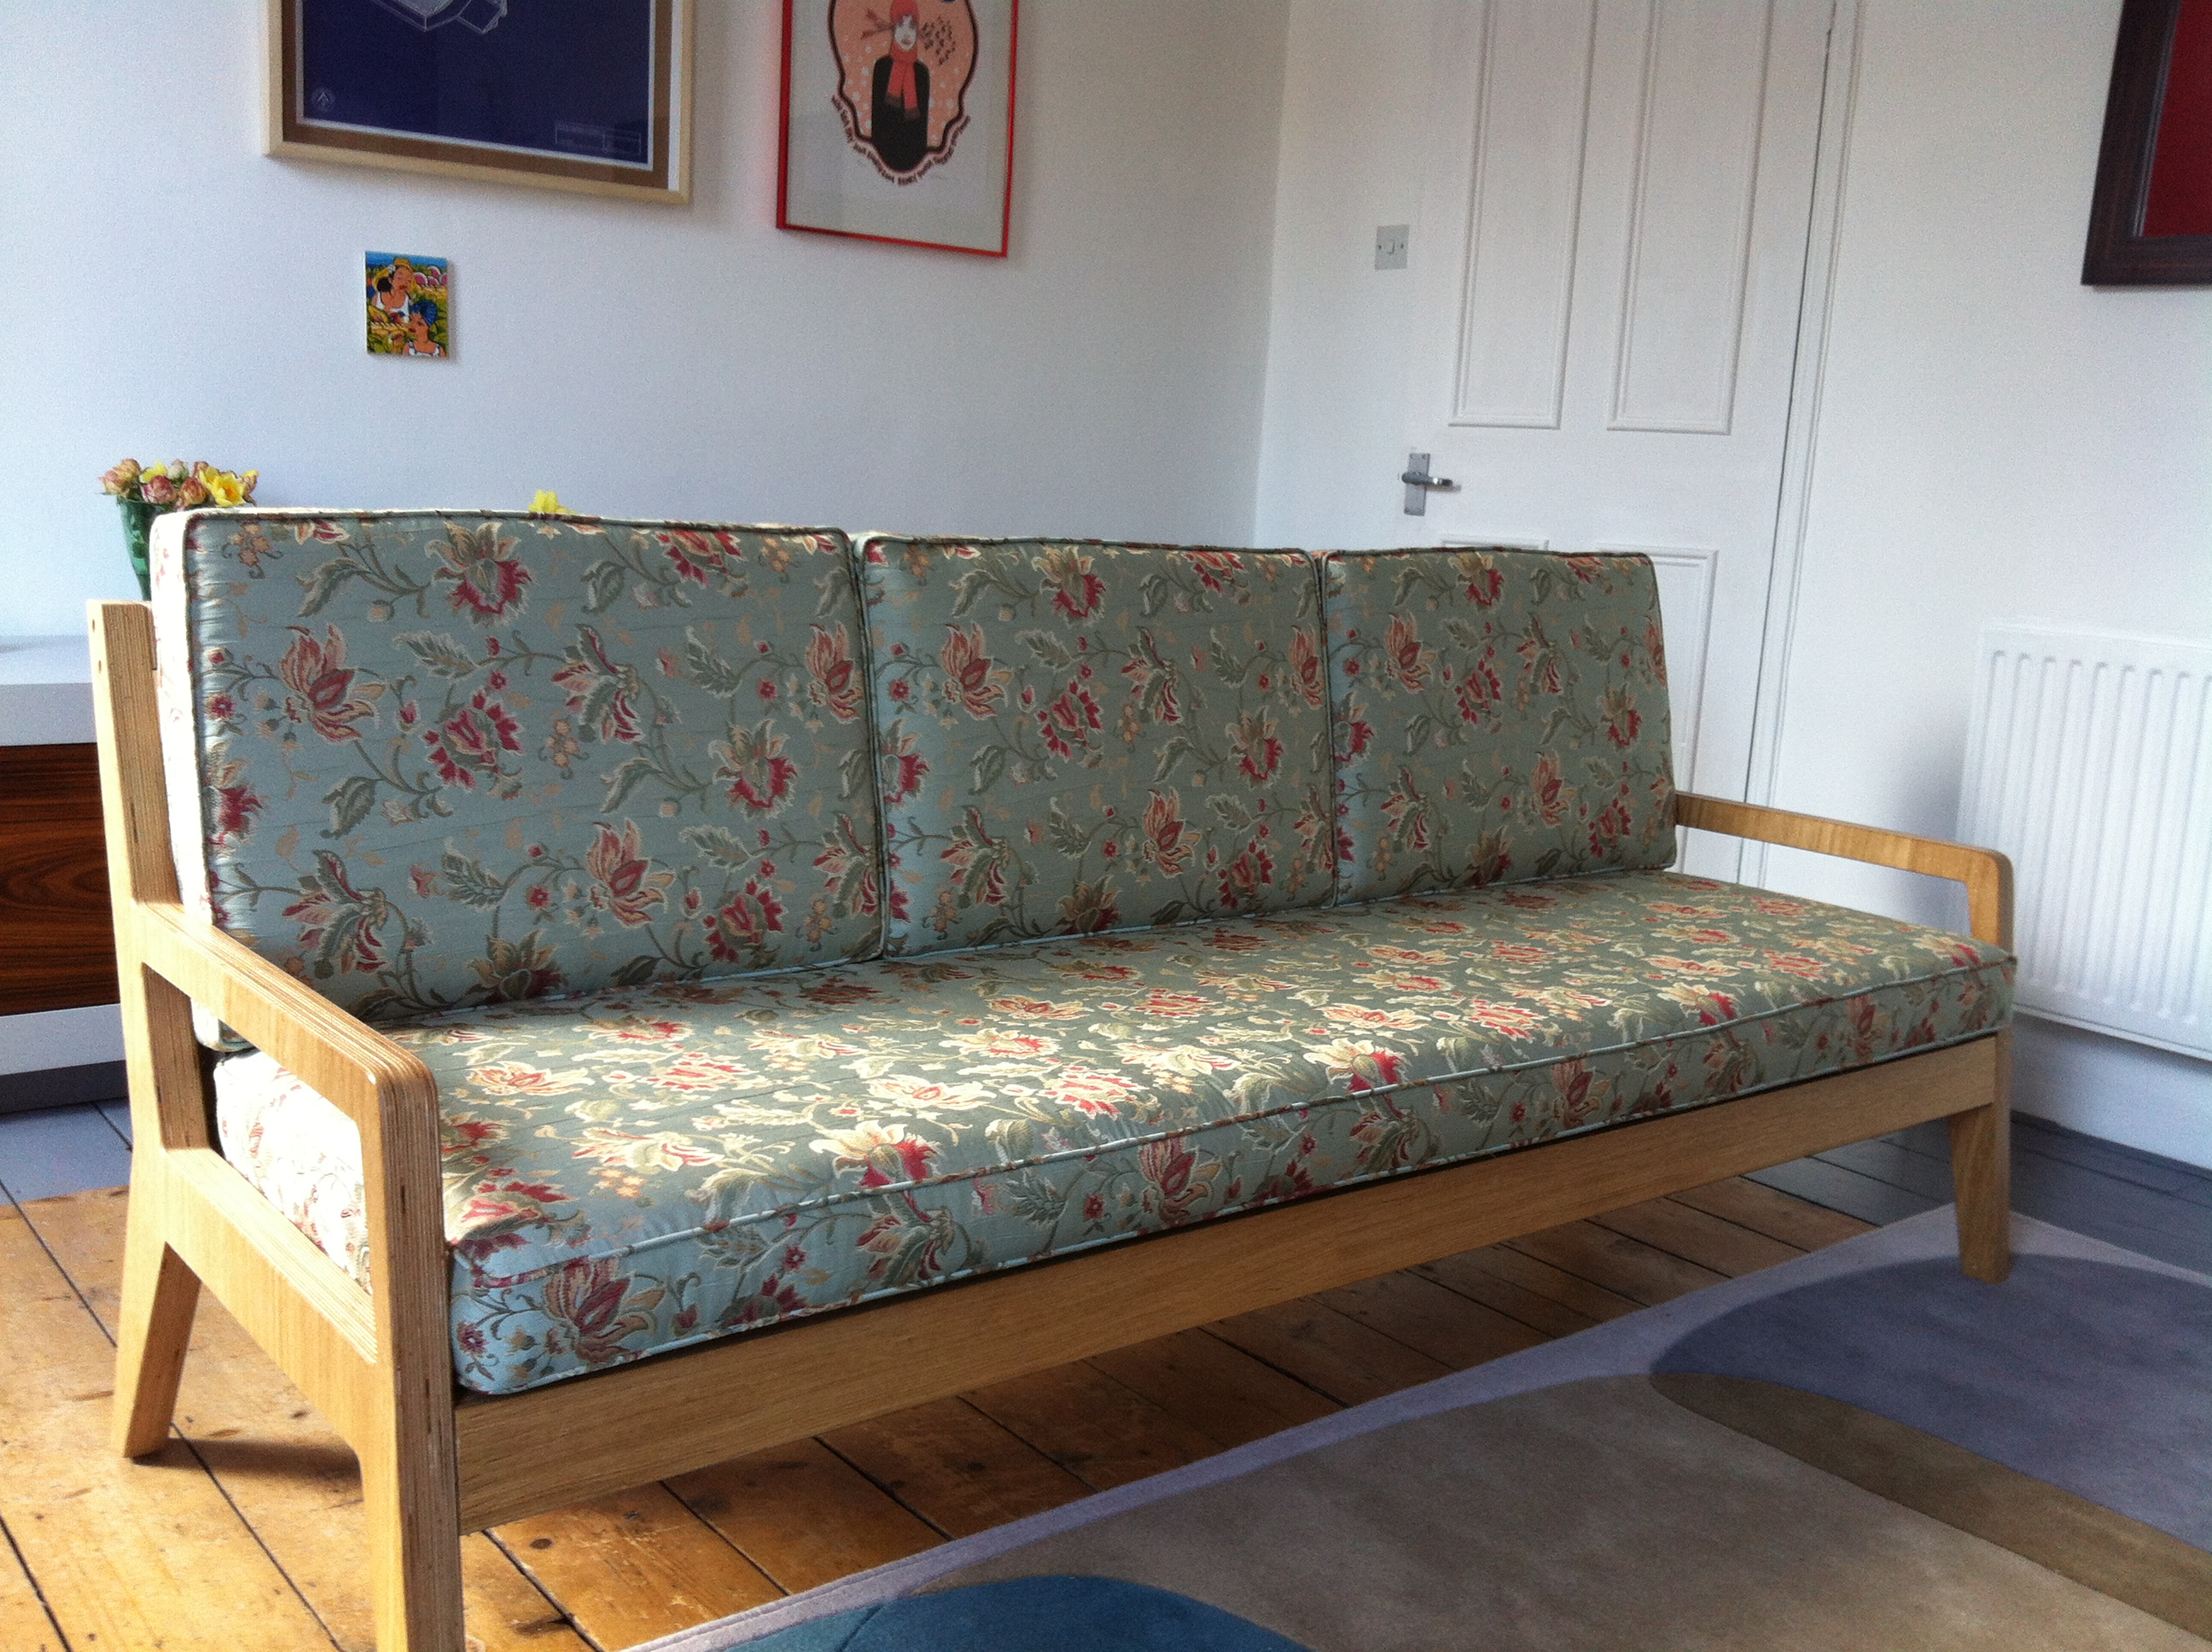 Flat Pack Sofa For Flats With Limited Access Made Of Oak Veneered Ply And Black